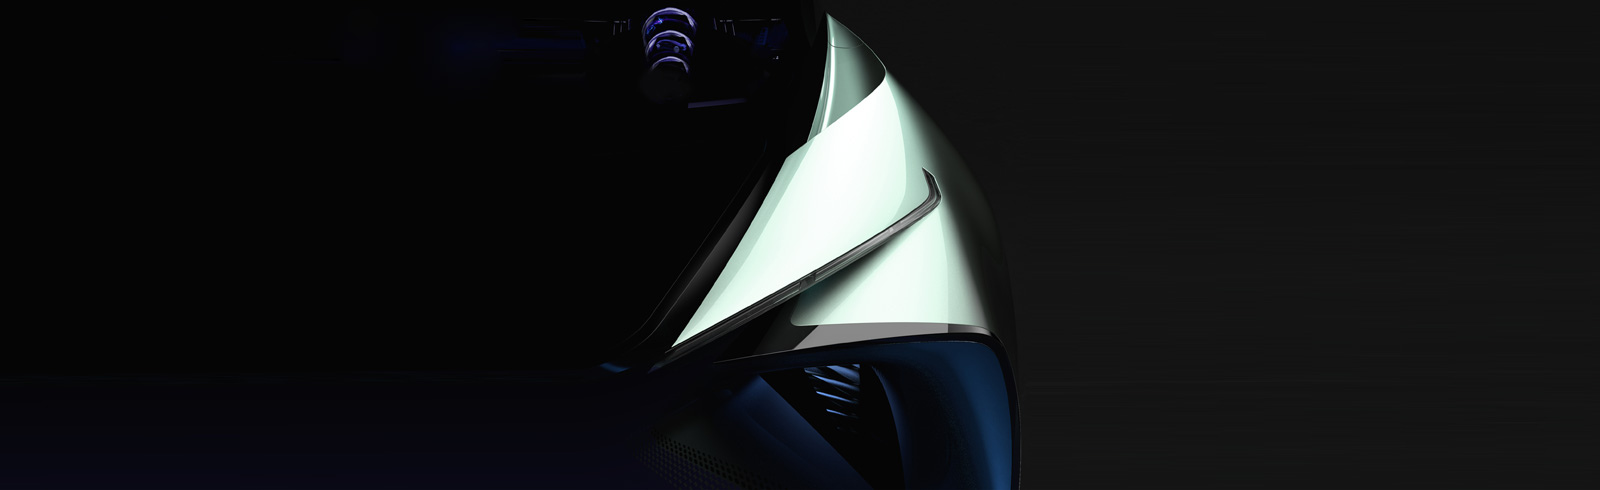 Toyota teases the first Lexus all-electric vehicle (teaser video included)